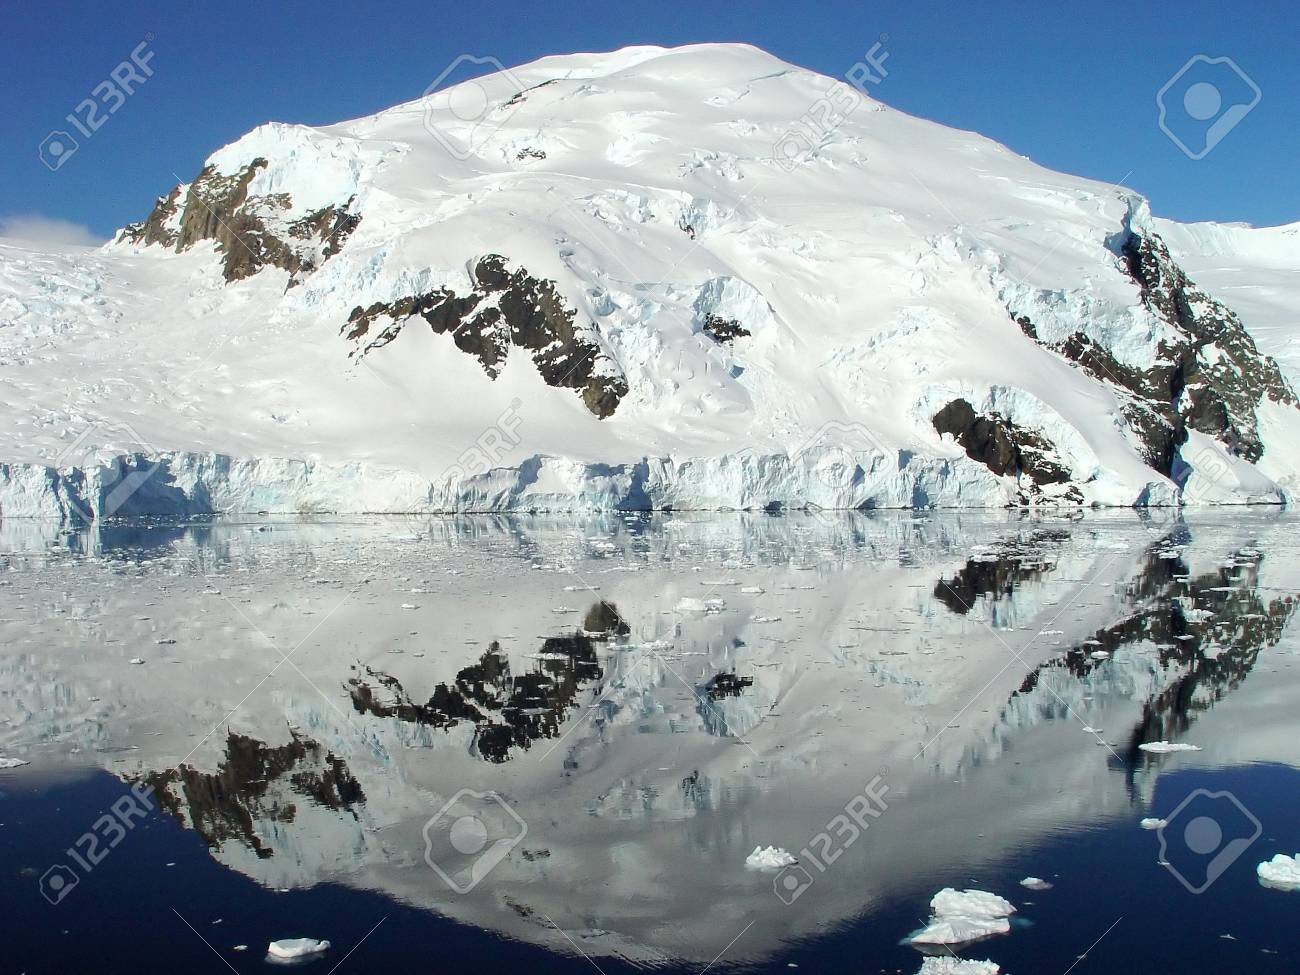 Reflection of icebergs, Sunny day in Antarctica Stock Photo - 3255229